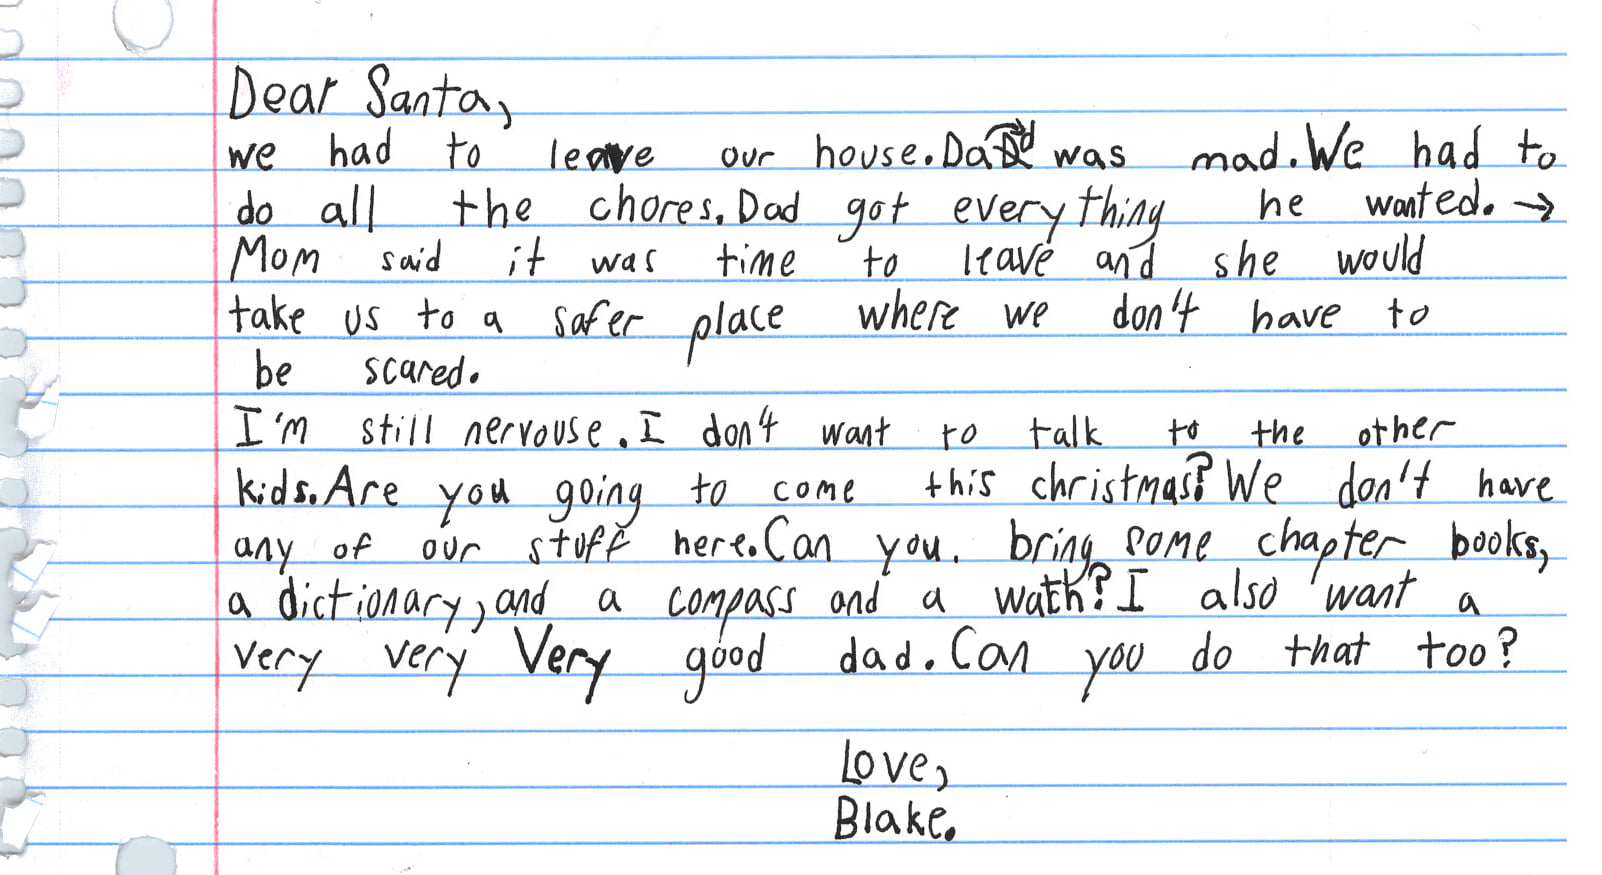 79198022 2926947804004407 3729781150676156416 o - Texas woman at domestic violence shelter finds son's letter to Santa: 'Dad was mad'